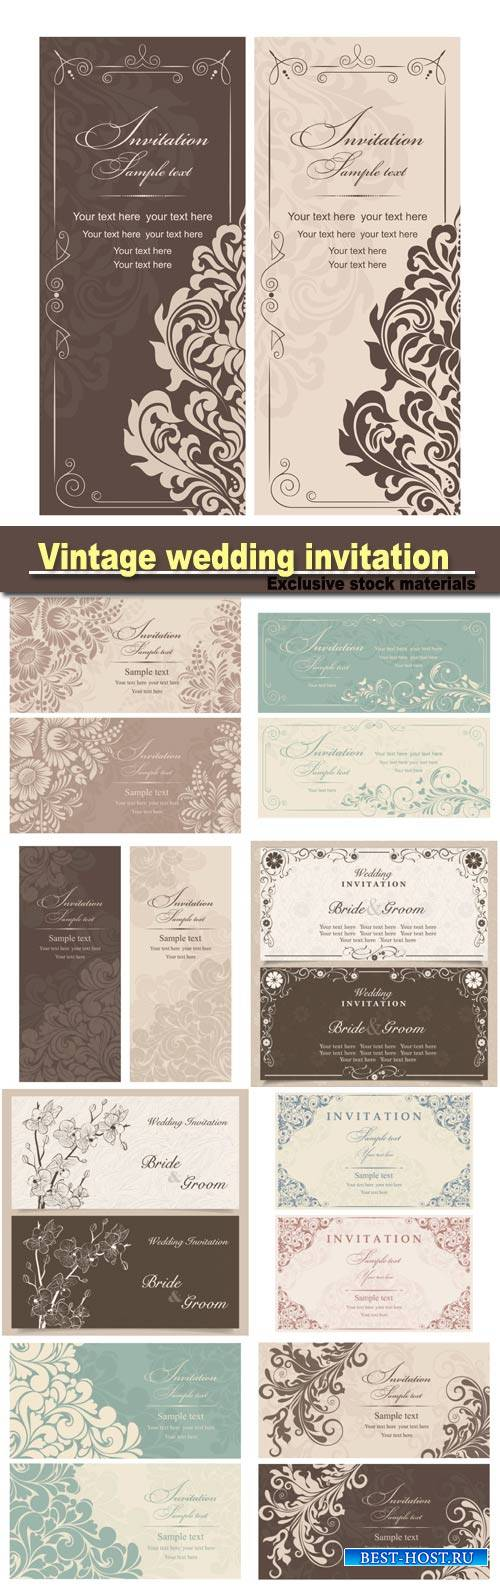 Vintage wedding invitation with floral design, vector illustration